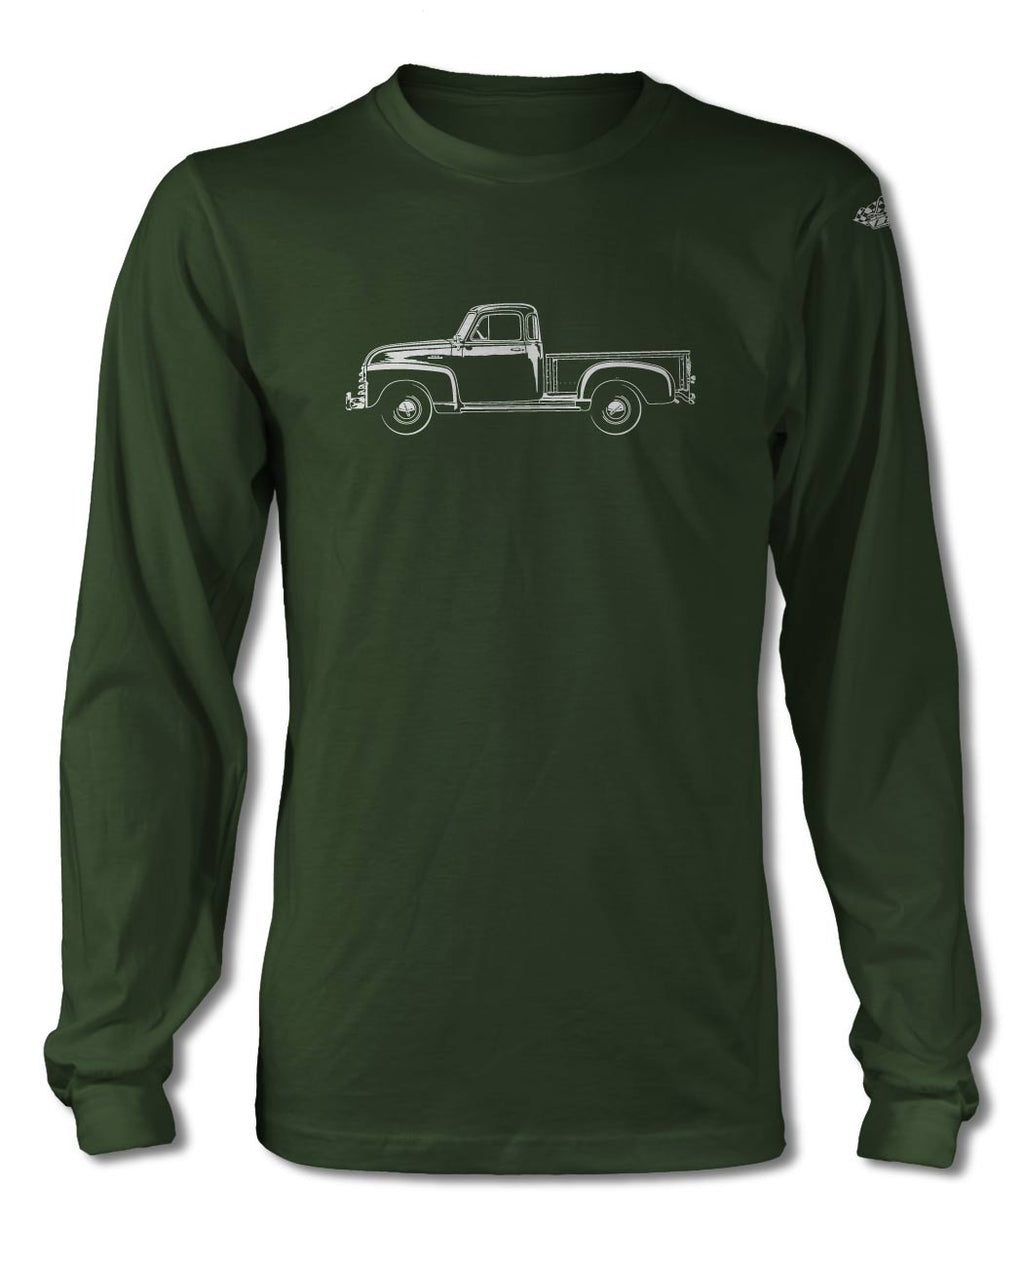 1951 - 1954 Chevrolet Pickup 3100 T-Shirt - Long Sleeves - Side View